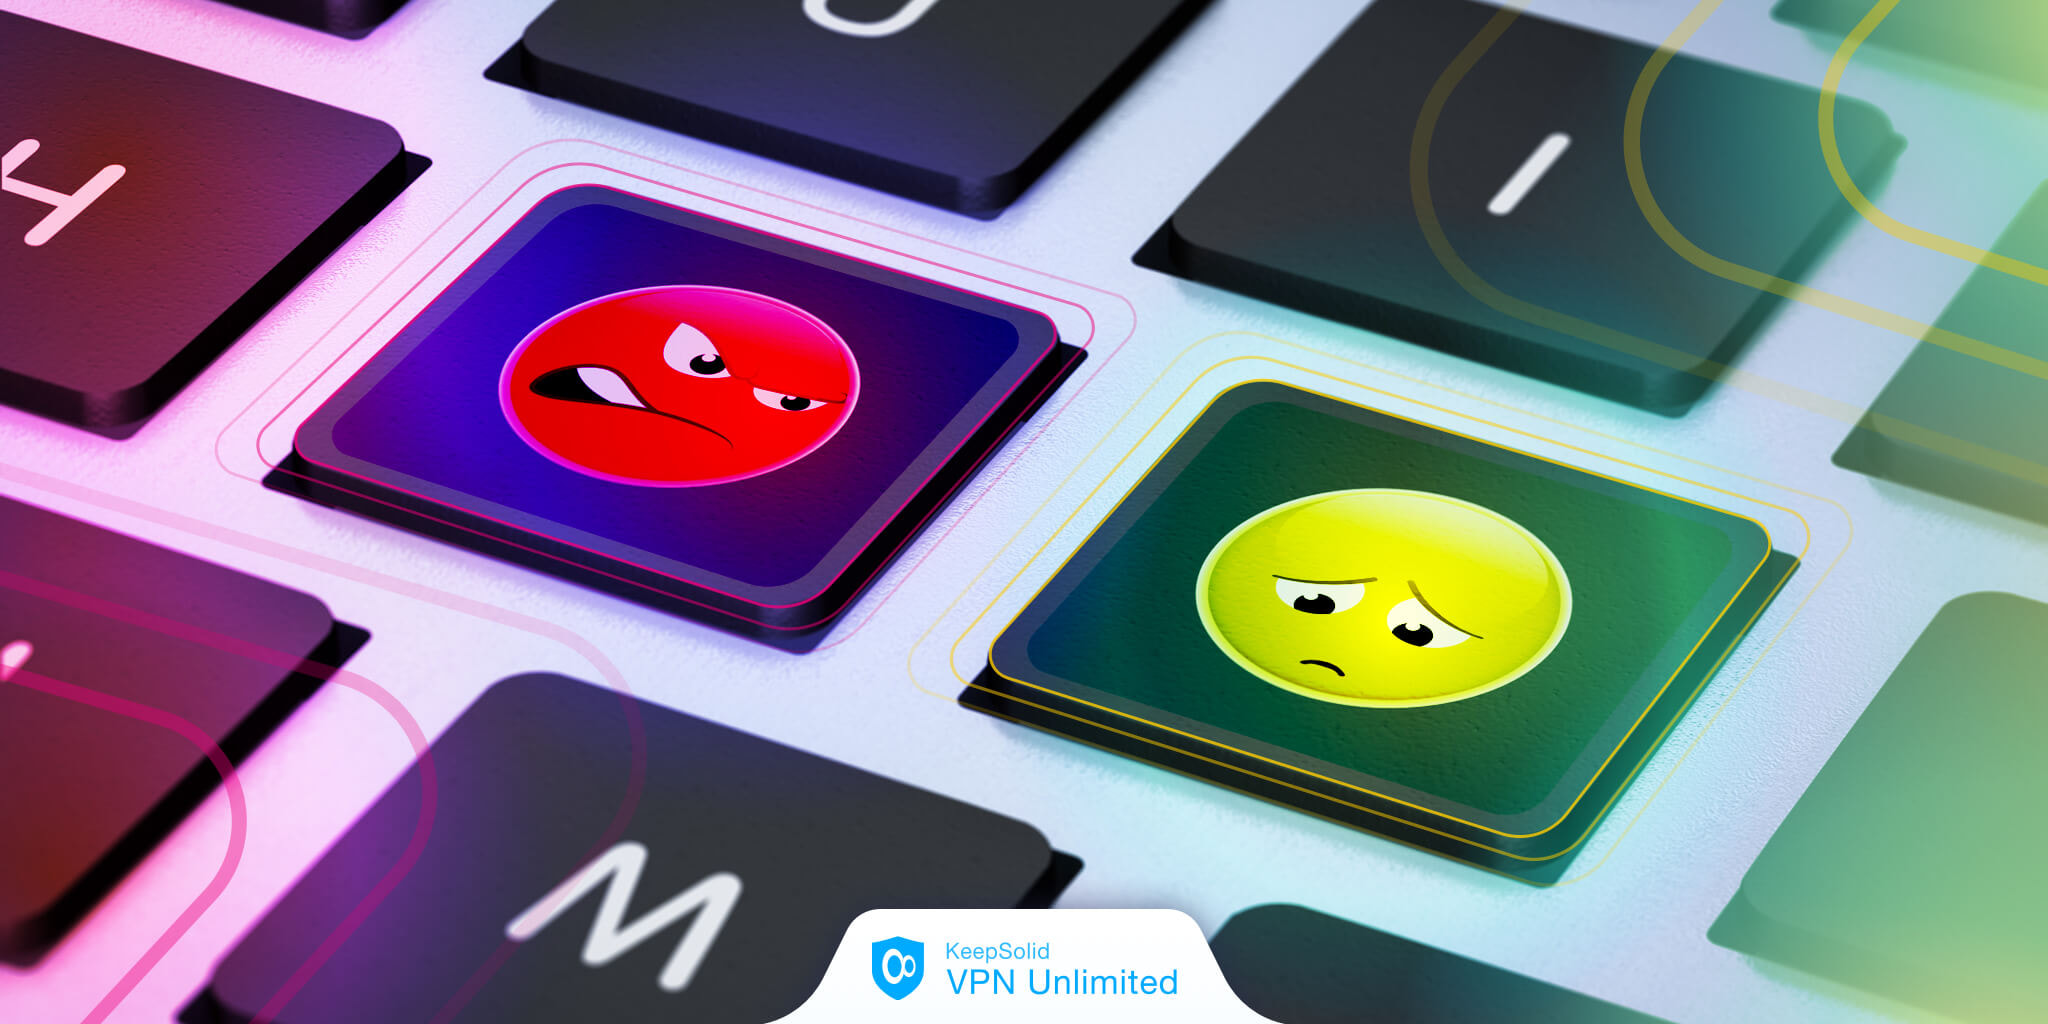 A keyboard with emoji buttons on online gadget for kids.